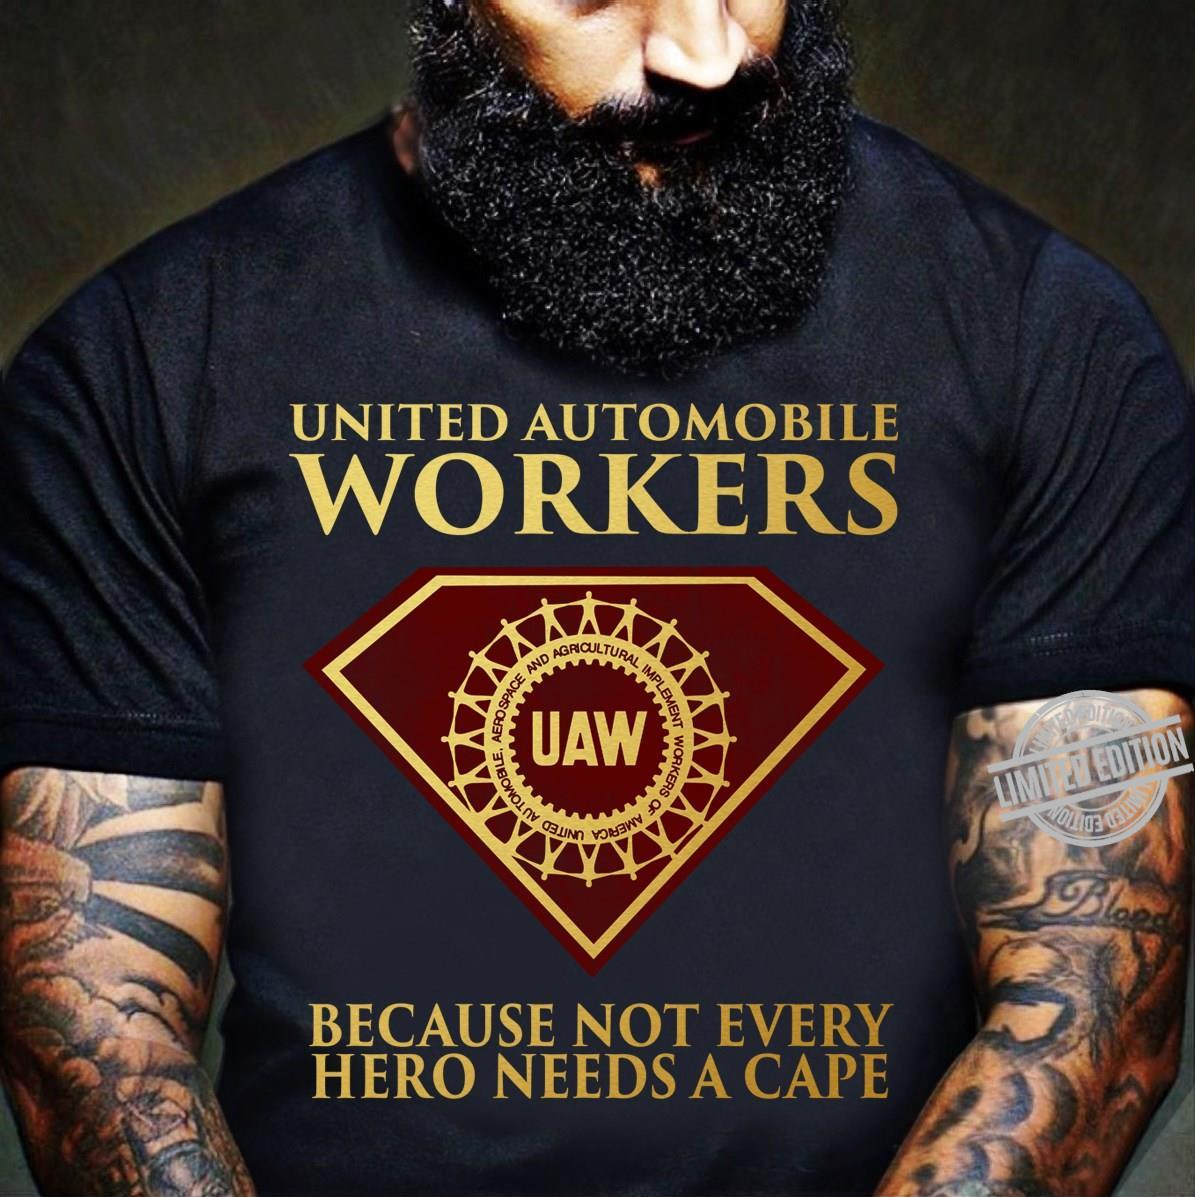 United Automobile Workers Because Not Every Hero Needs A Cape Shirt